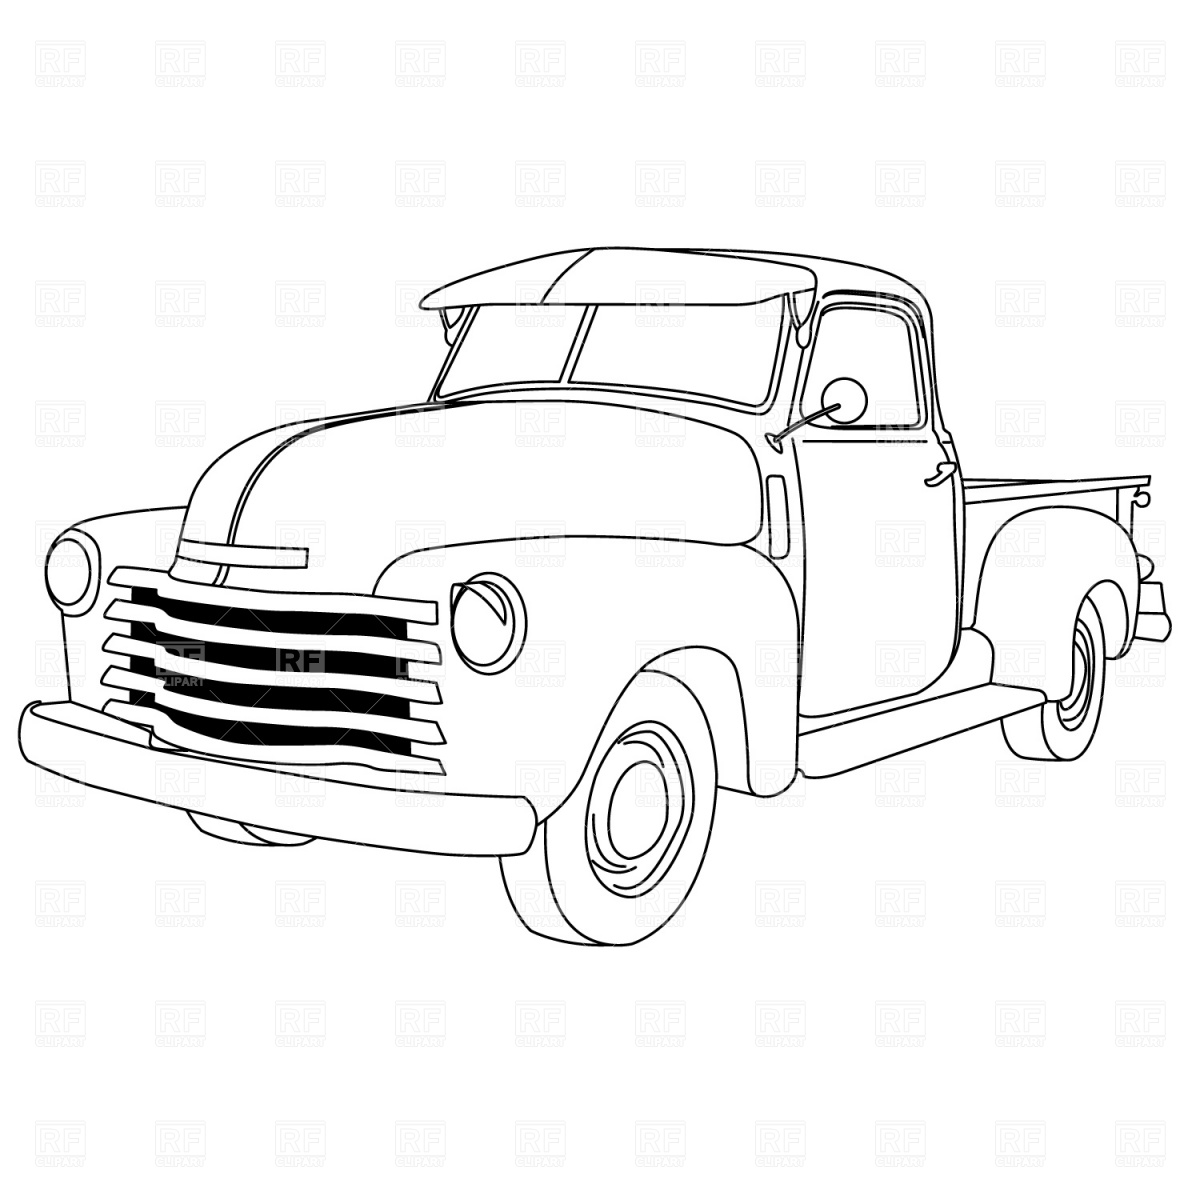 1950 Chevy Truck Silhouette.